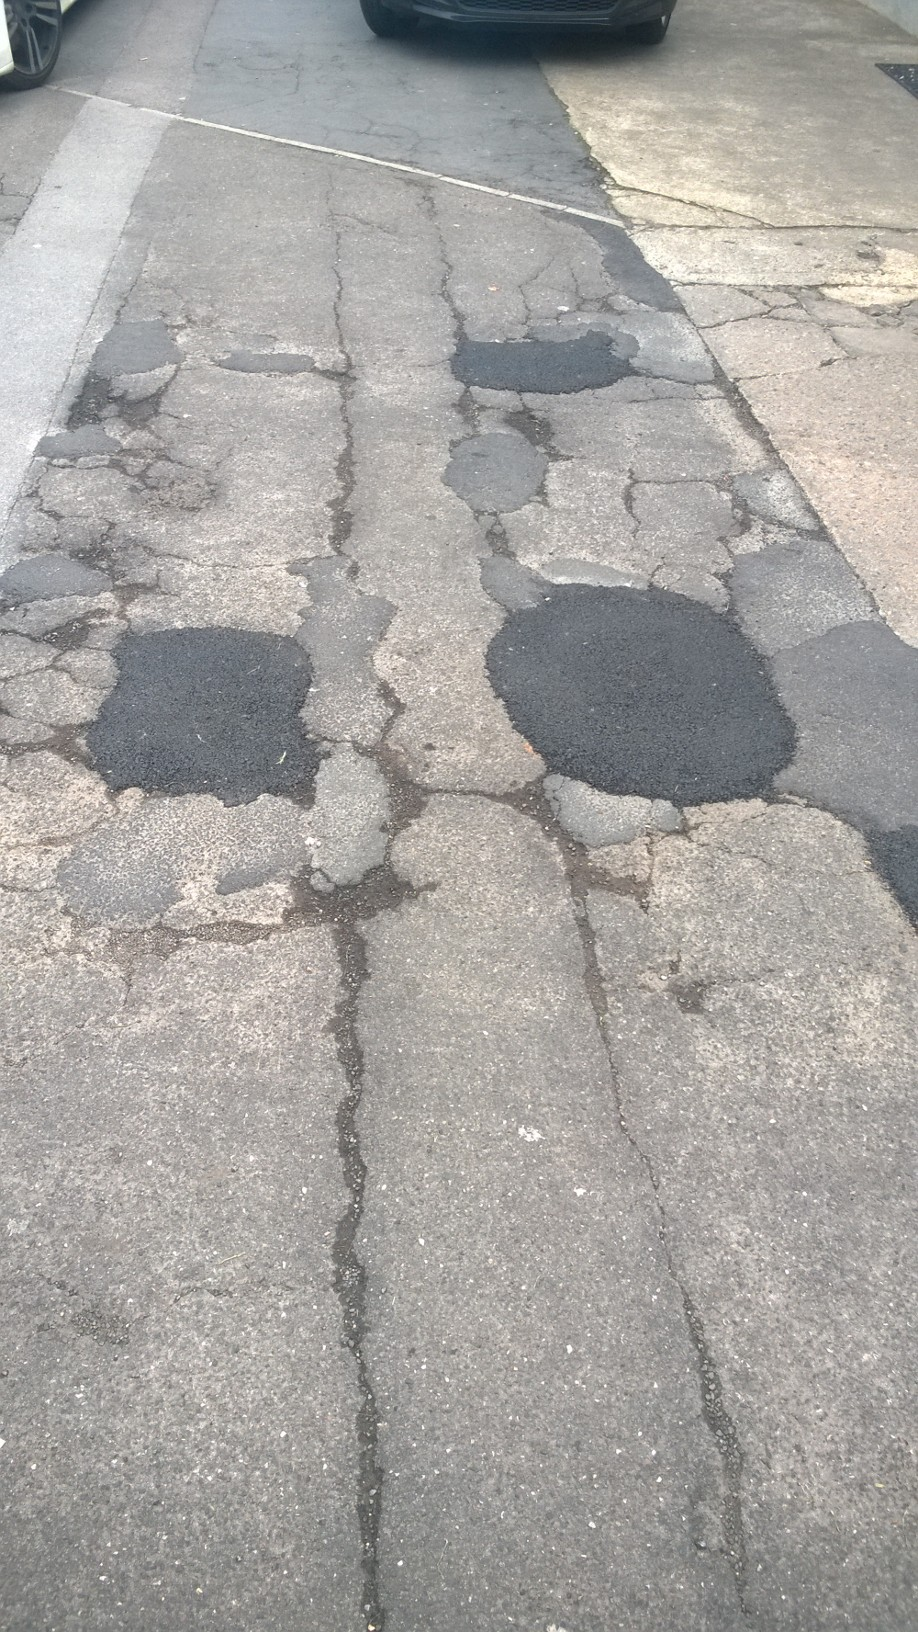 Tadcaster Road footpath repaired